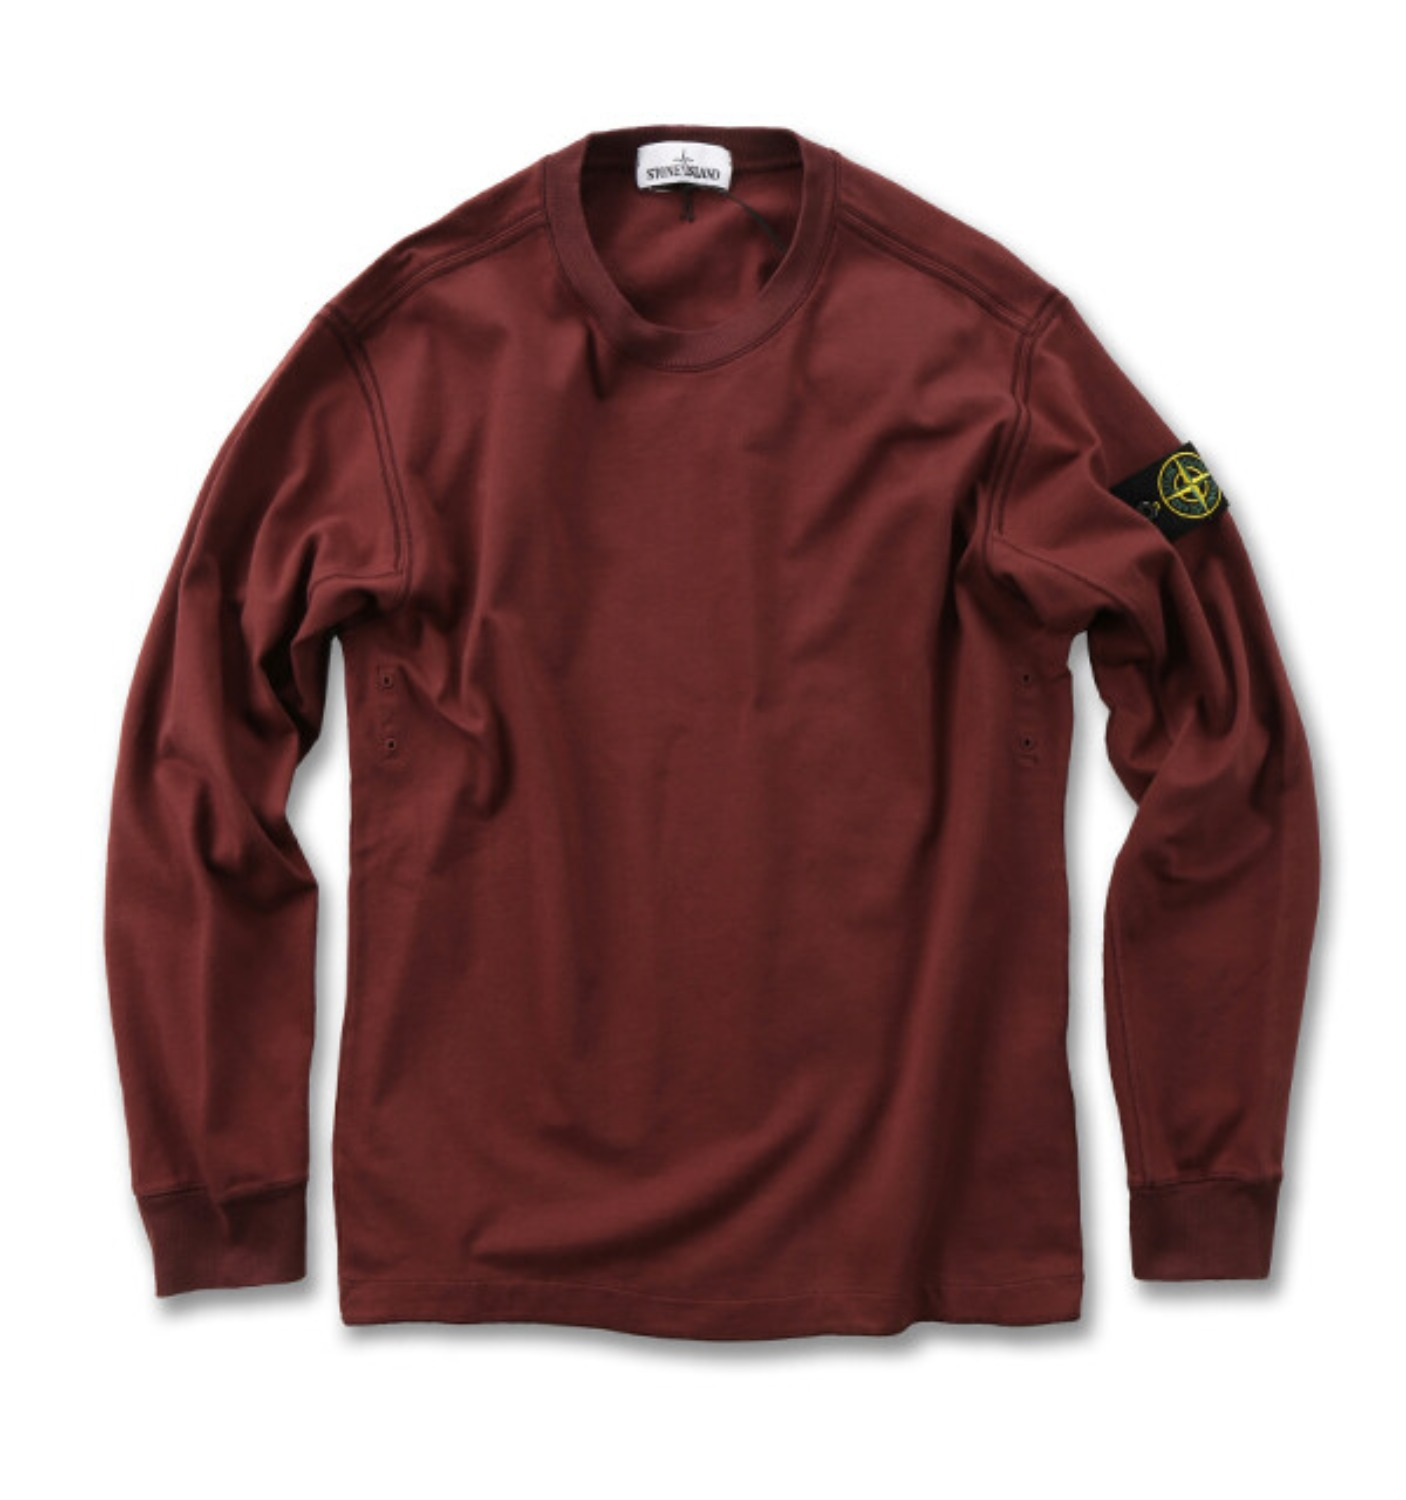 GARMENT DYED CREWNECK SWEATSHIRT BURGUNDY